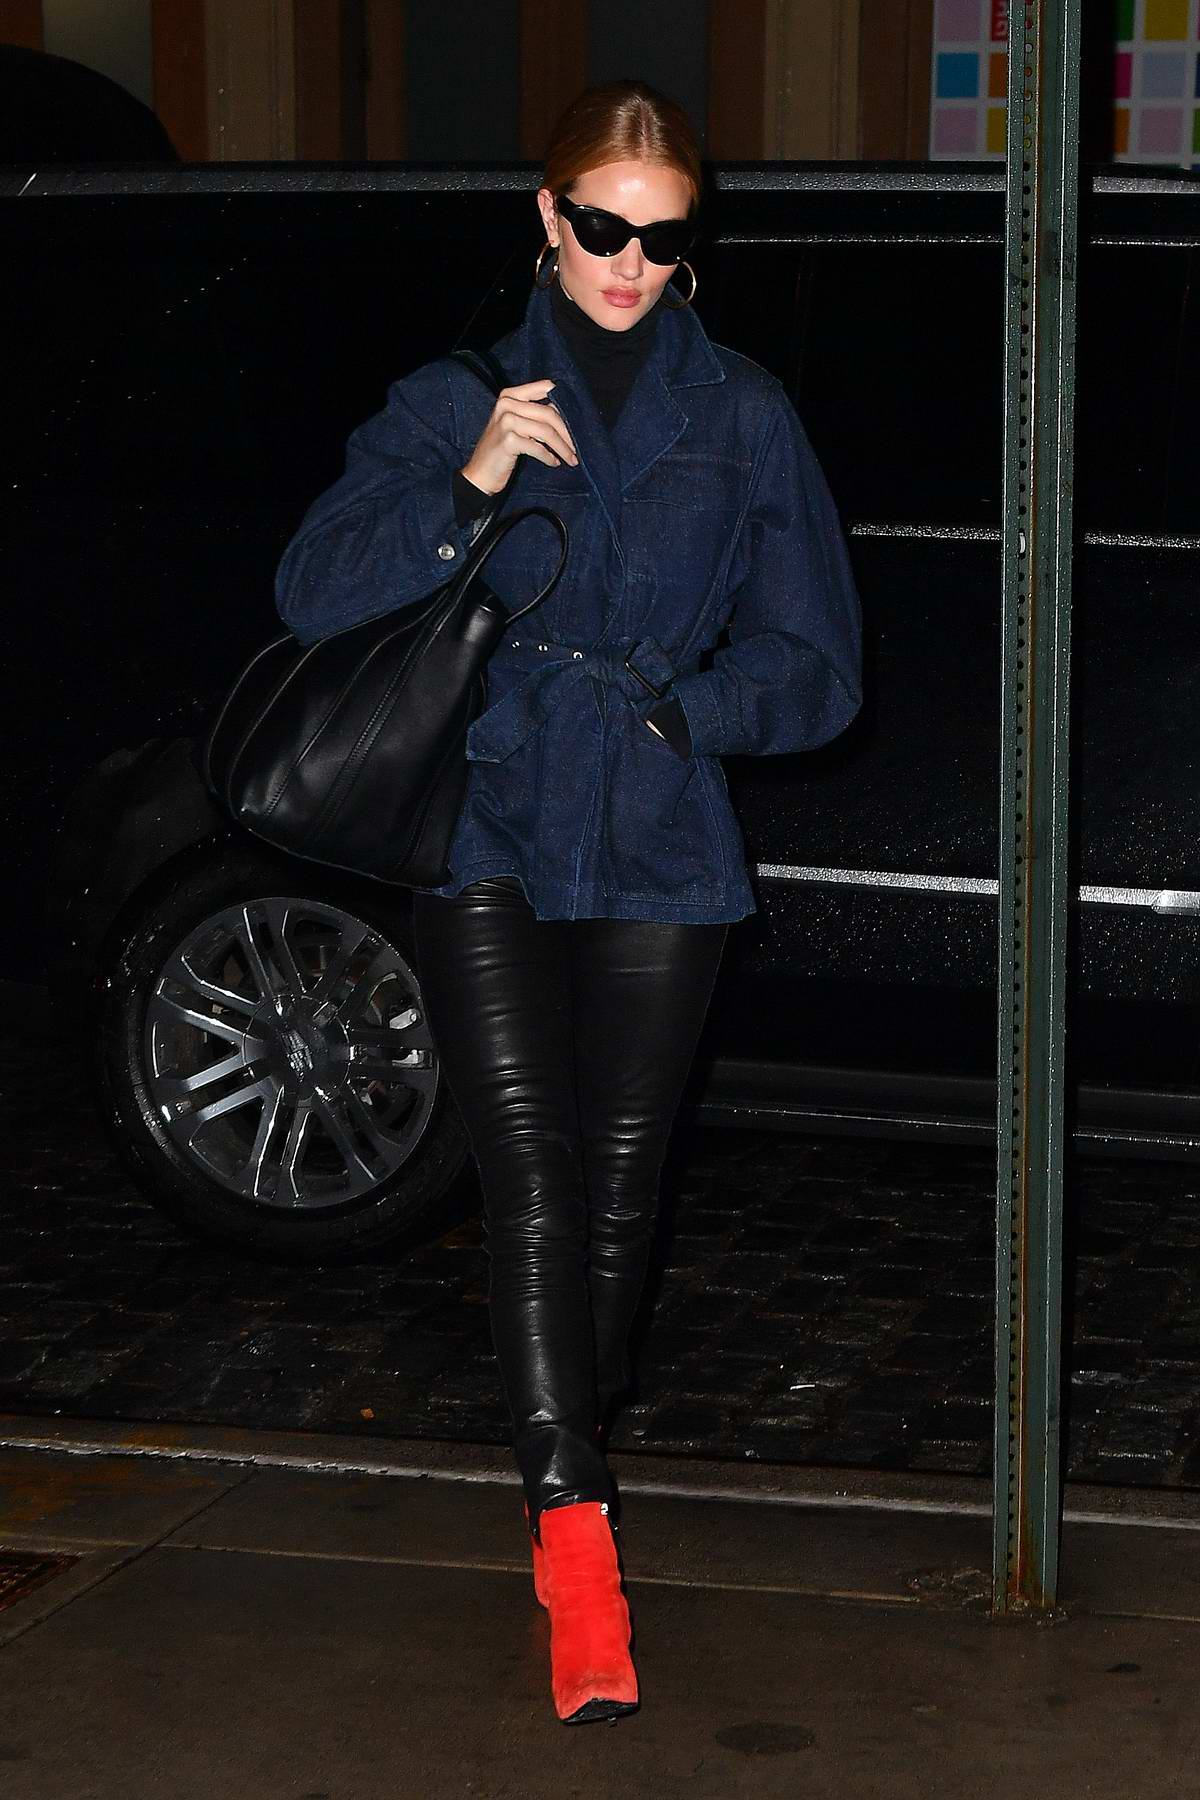 Rosie Huntington-Whiteley wears bright red boots with a denim jacket and leather pants during a night out in New York City